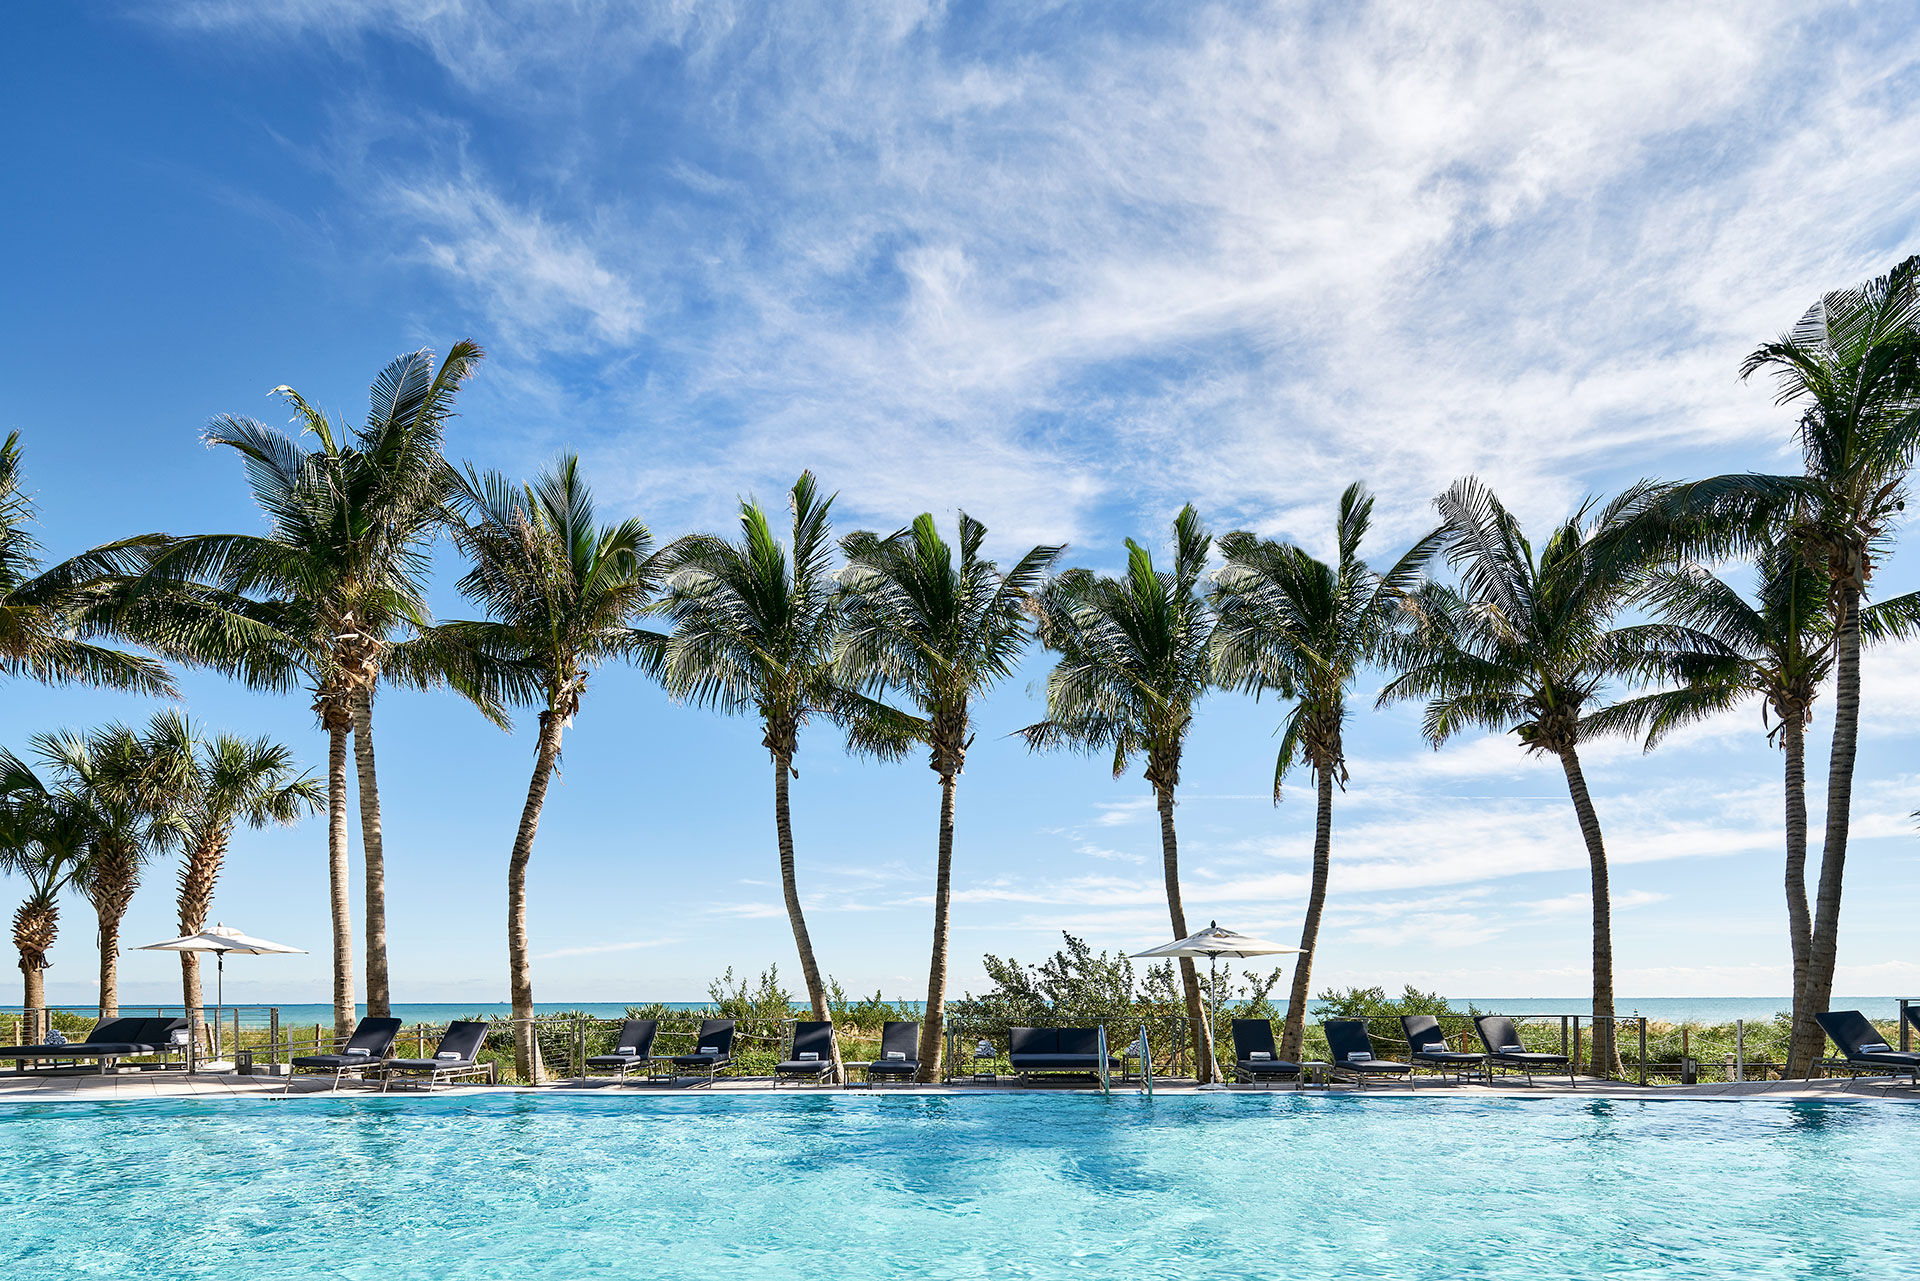 landscape shot of a line of palm trees against the blue sky. Beneath the palm trees and umbrellas and loungers that line a pool. The ocean is visible in the background.